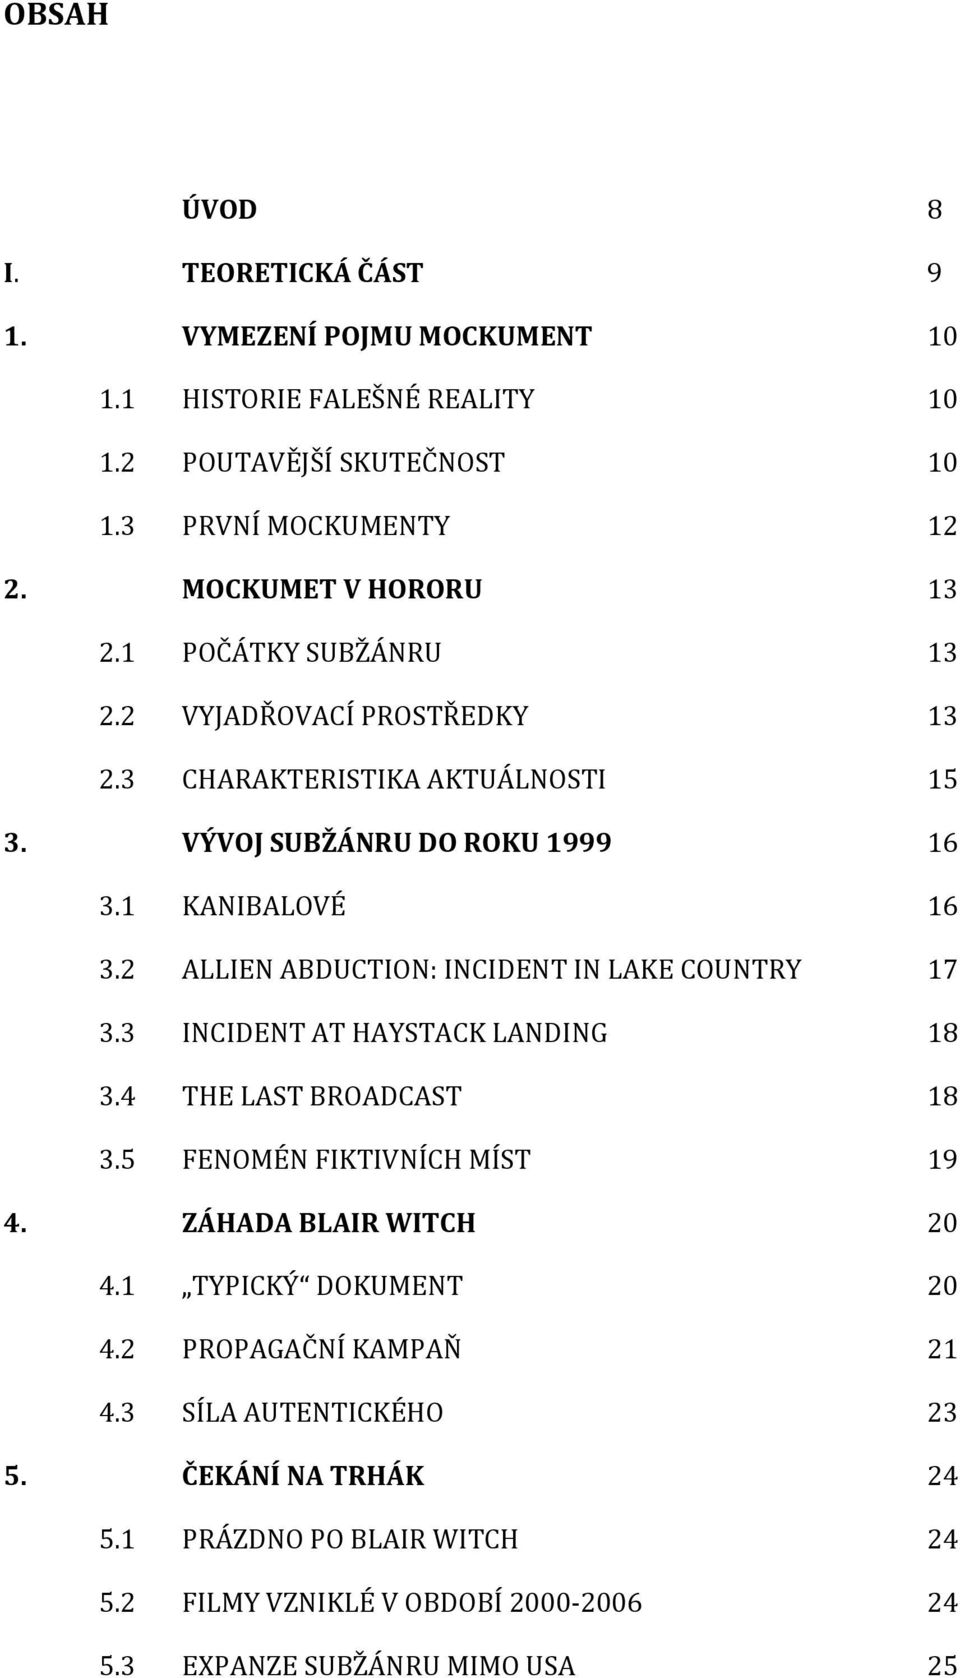 2 ALLIEN ABDUCTION: INCIDENT IN LAKE COUNTRY 17 3.3 INCIDENT AT HAYSTACK LANDING 18 3.4 THE LAST BROADCAST 18 3.5 FENOMÉN FIKTIVNÍCH MÍST 19 4. ZÁHADA BLAIR WITCH 20 4.